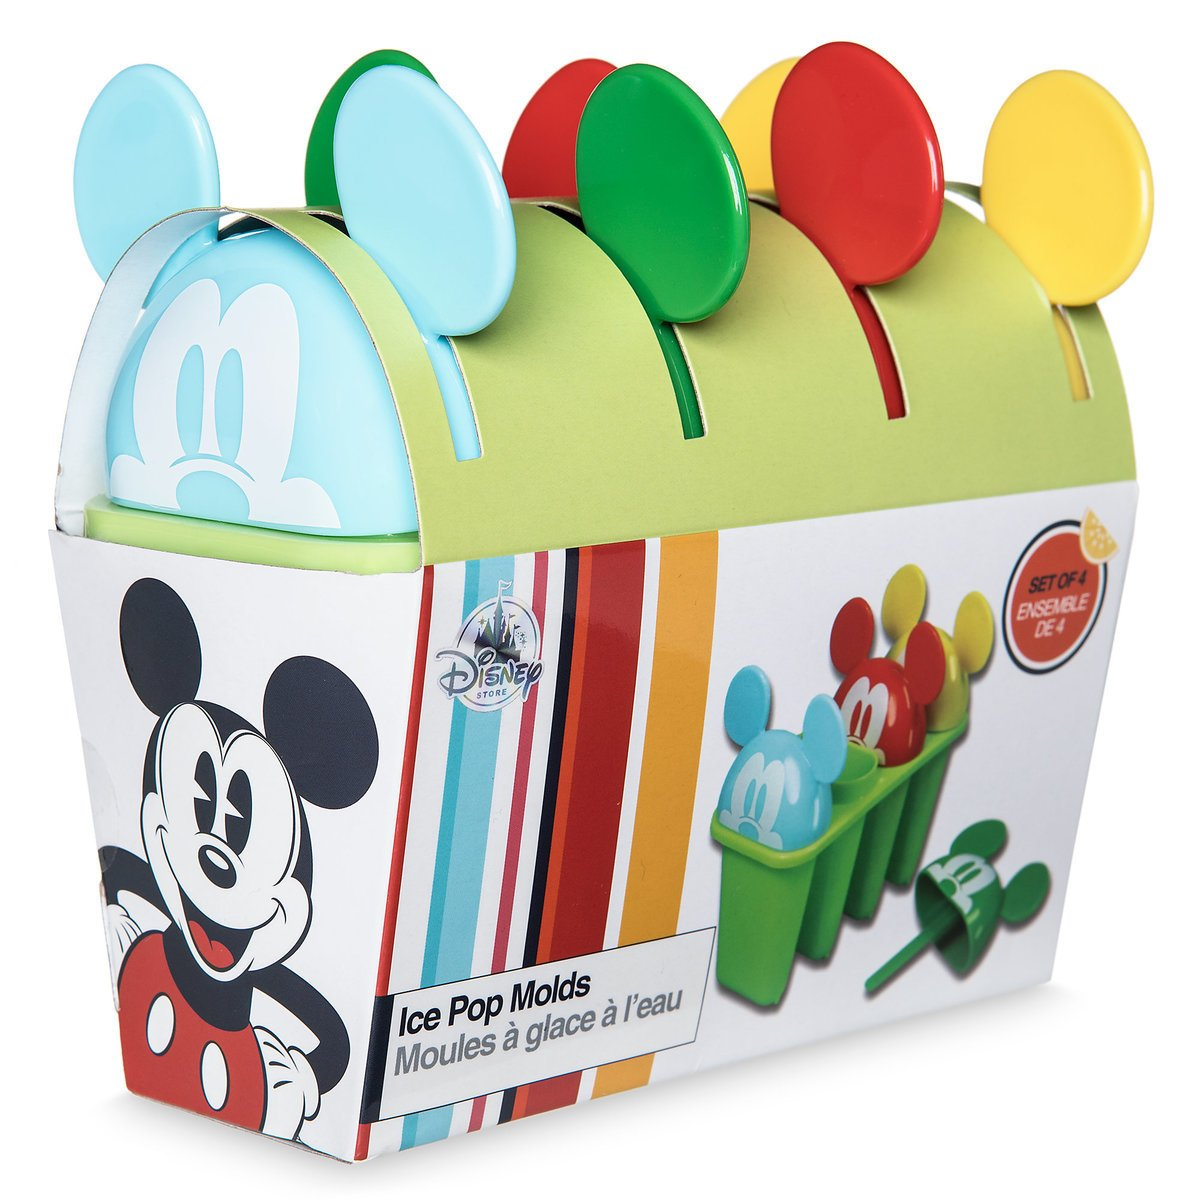 Mickey Ice Pop Mold - Disney Mouse Molds Set of 4 Molds